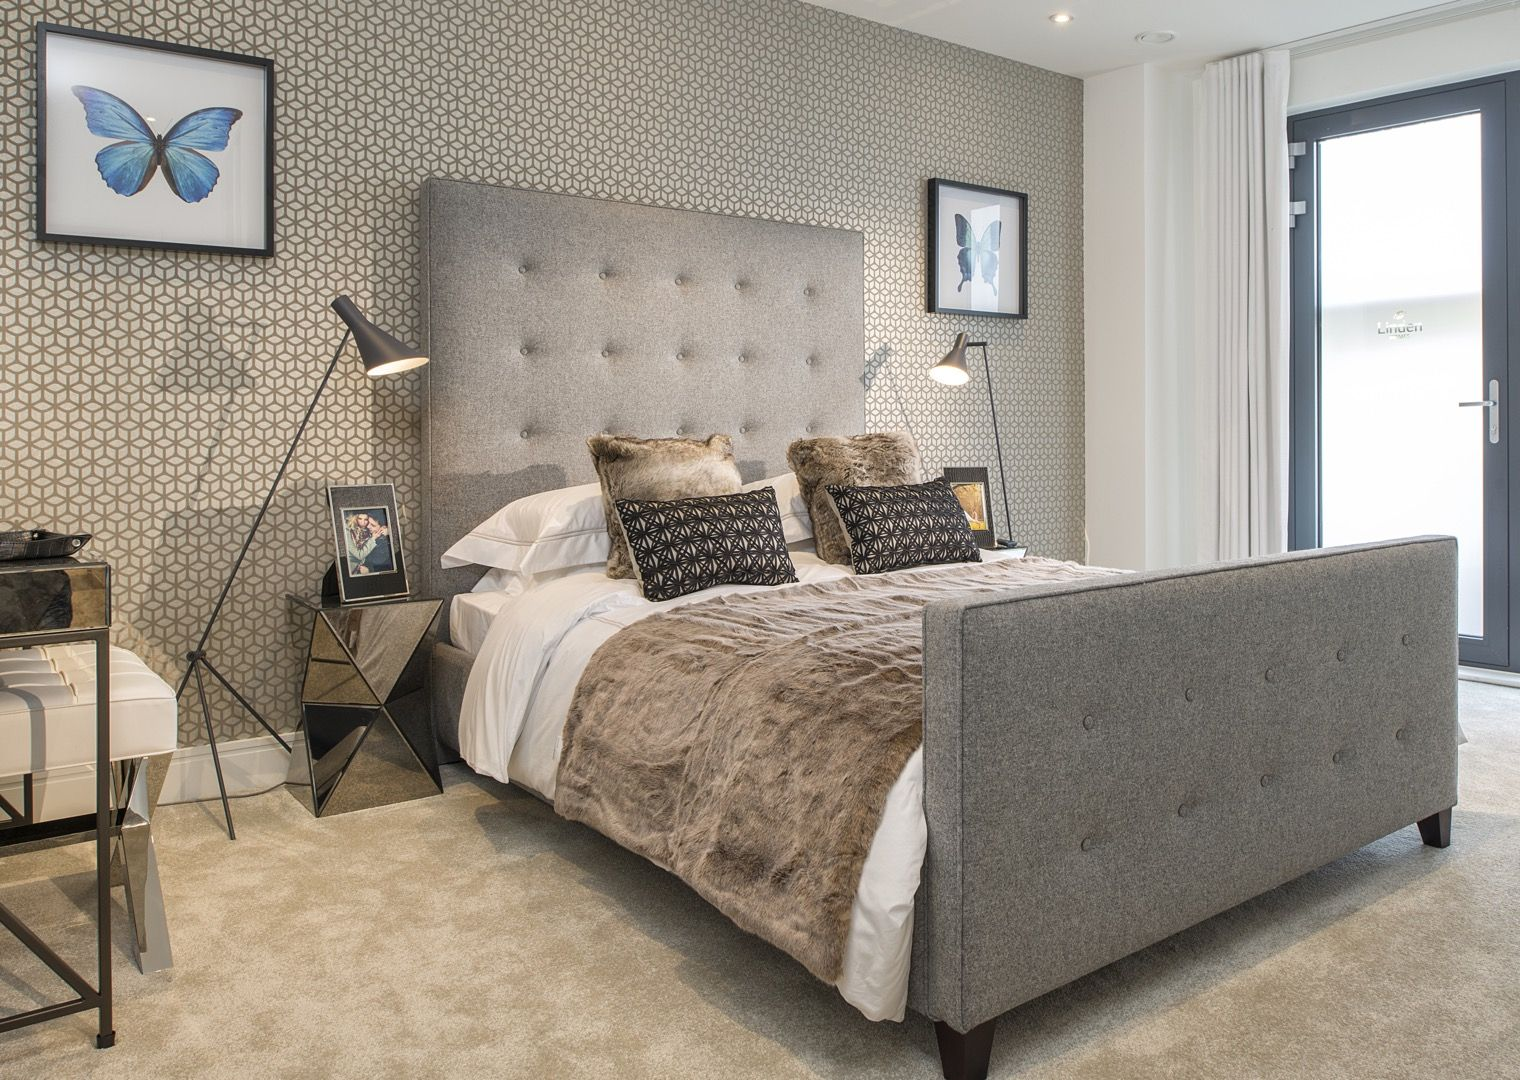 Pictures of show home interiors.